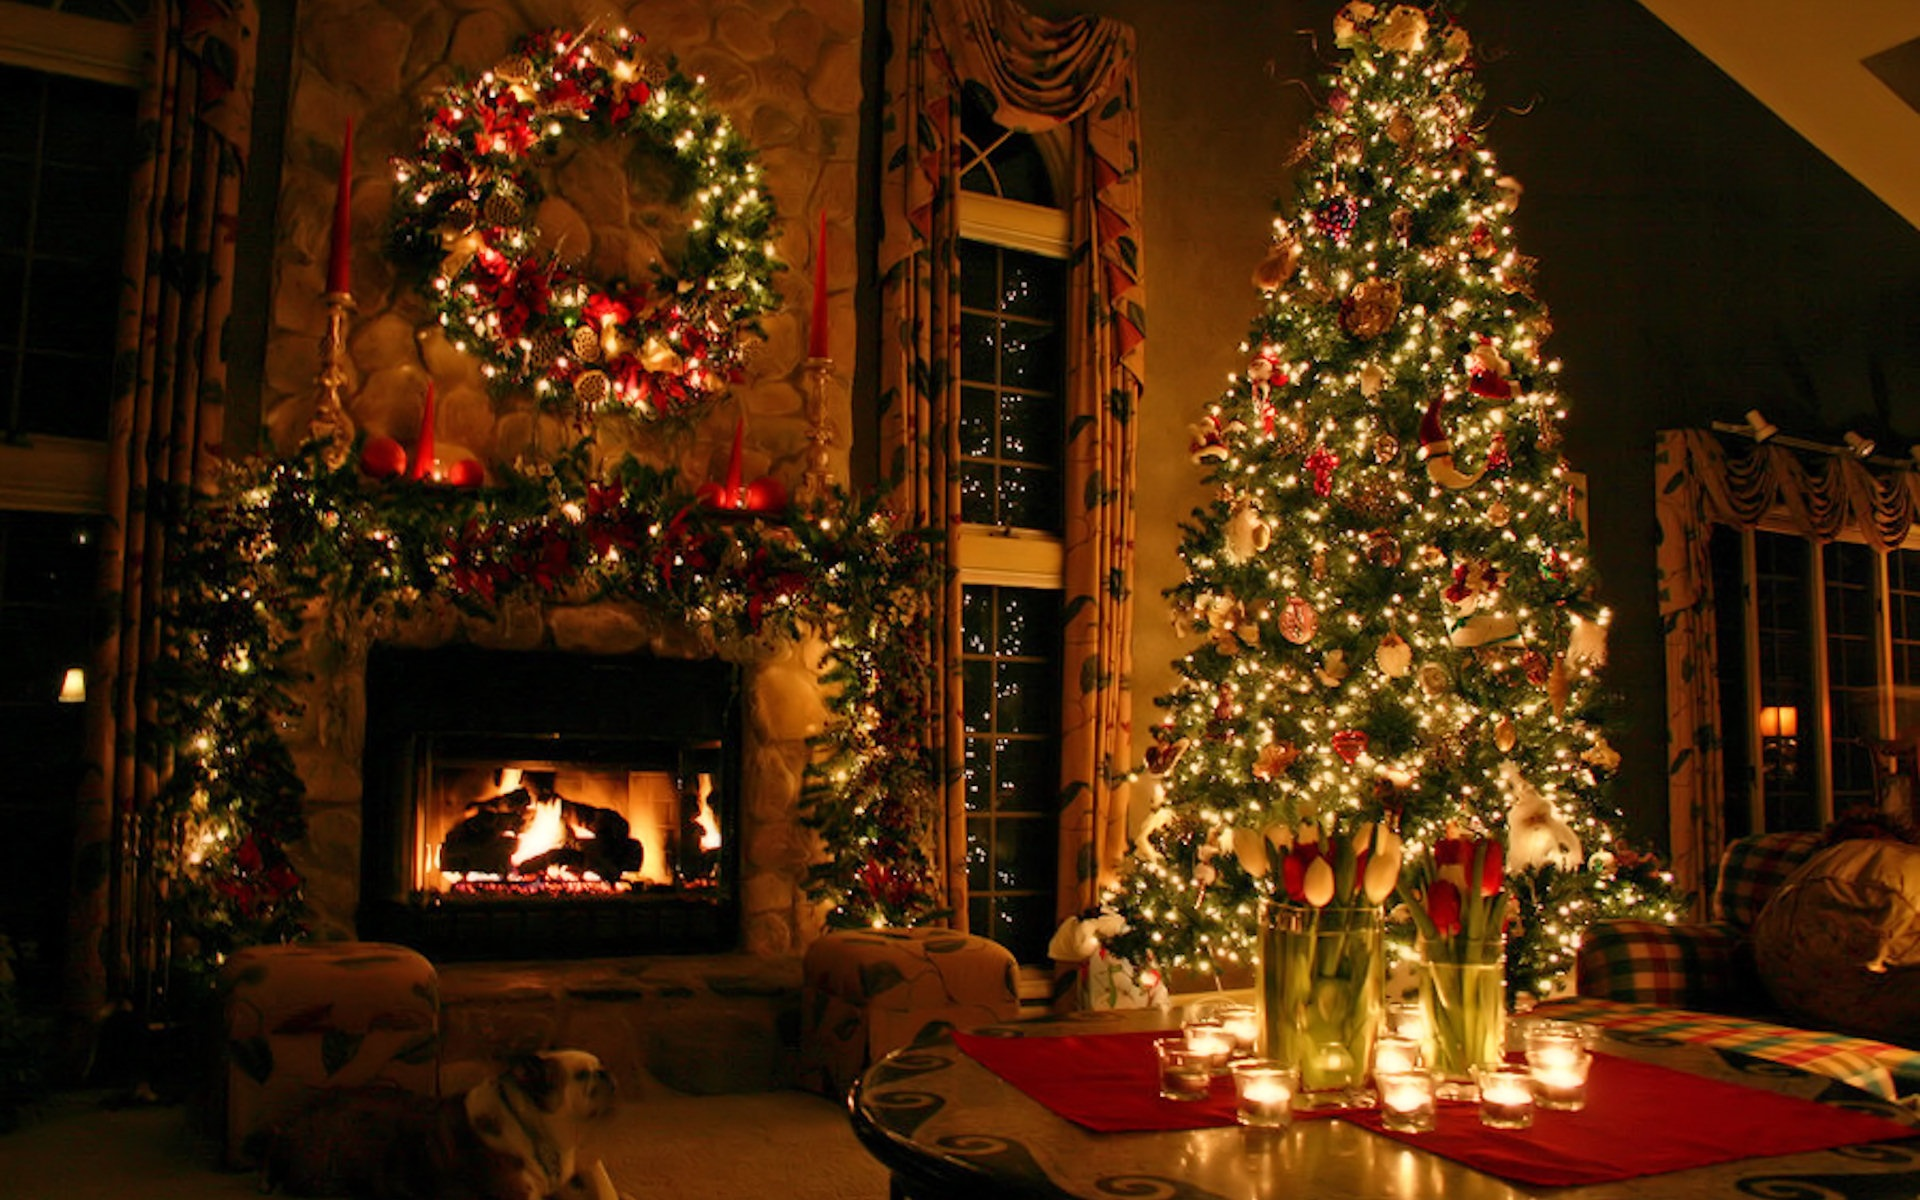 Christmas Desktop Wallpaper Best Wallpapers Download 1920x1200